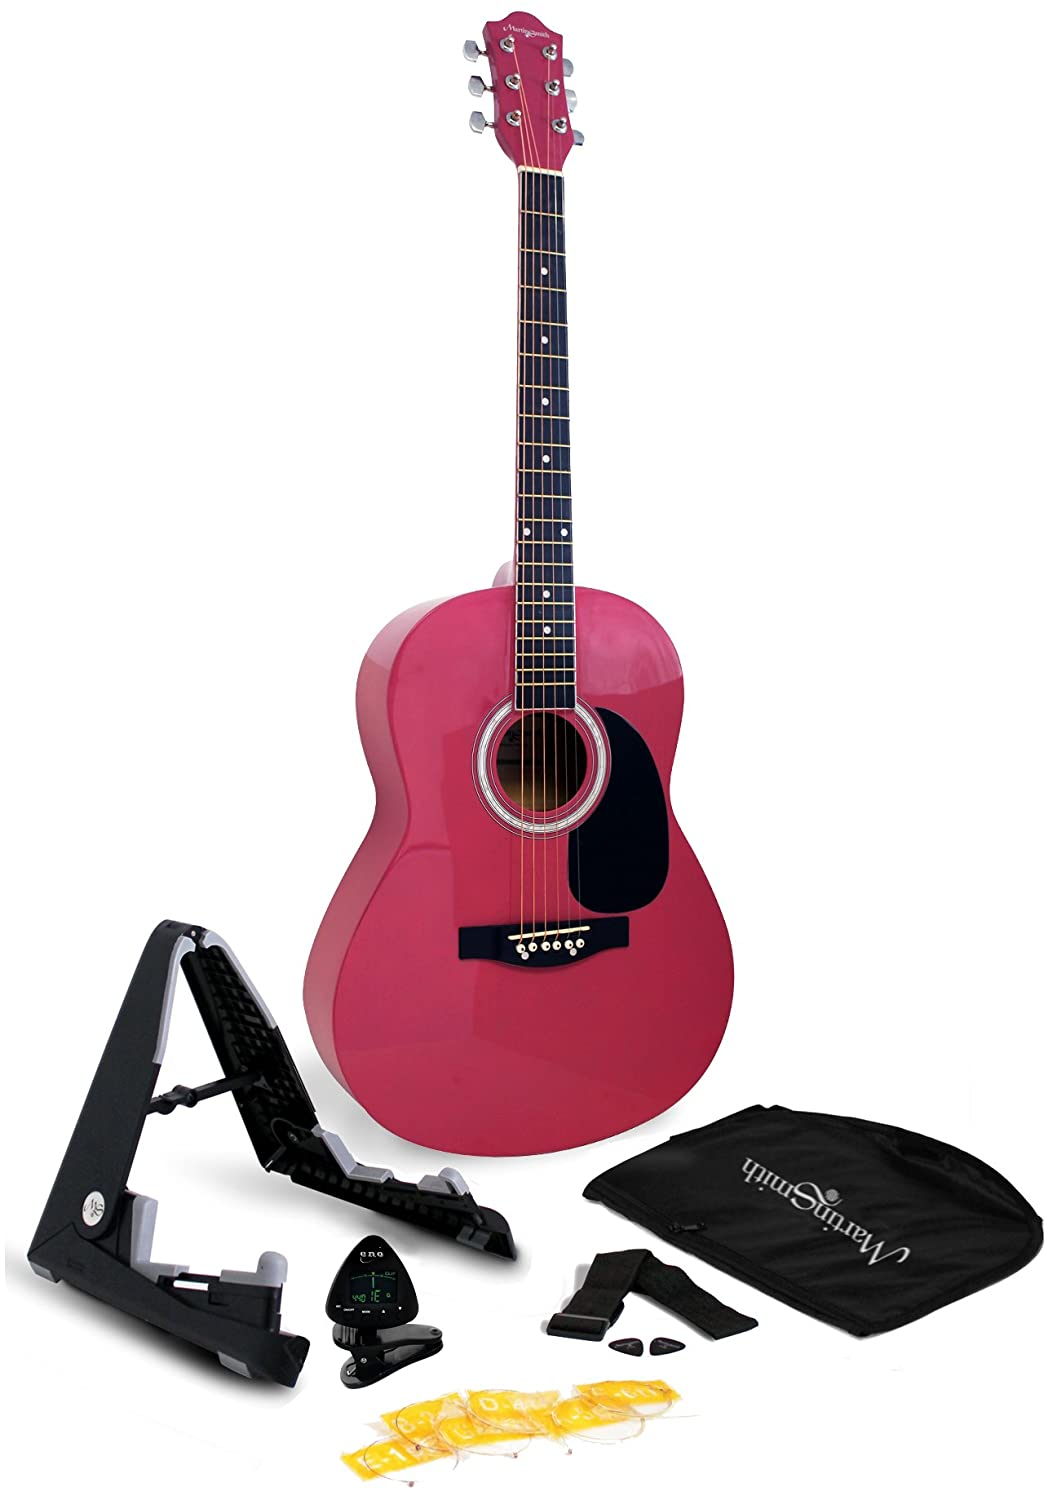 Martin Smith W-101-PNK-PK Acoustic Guitar Super Kit with Stand, Natural, Pink